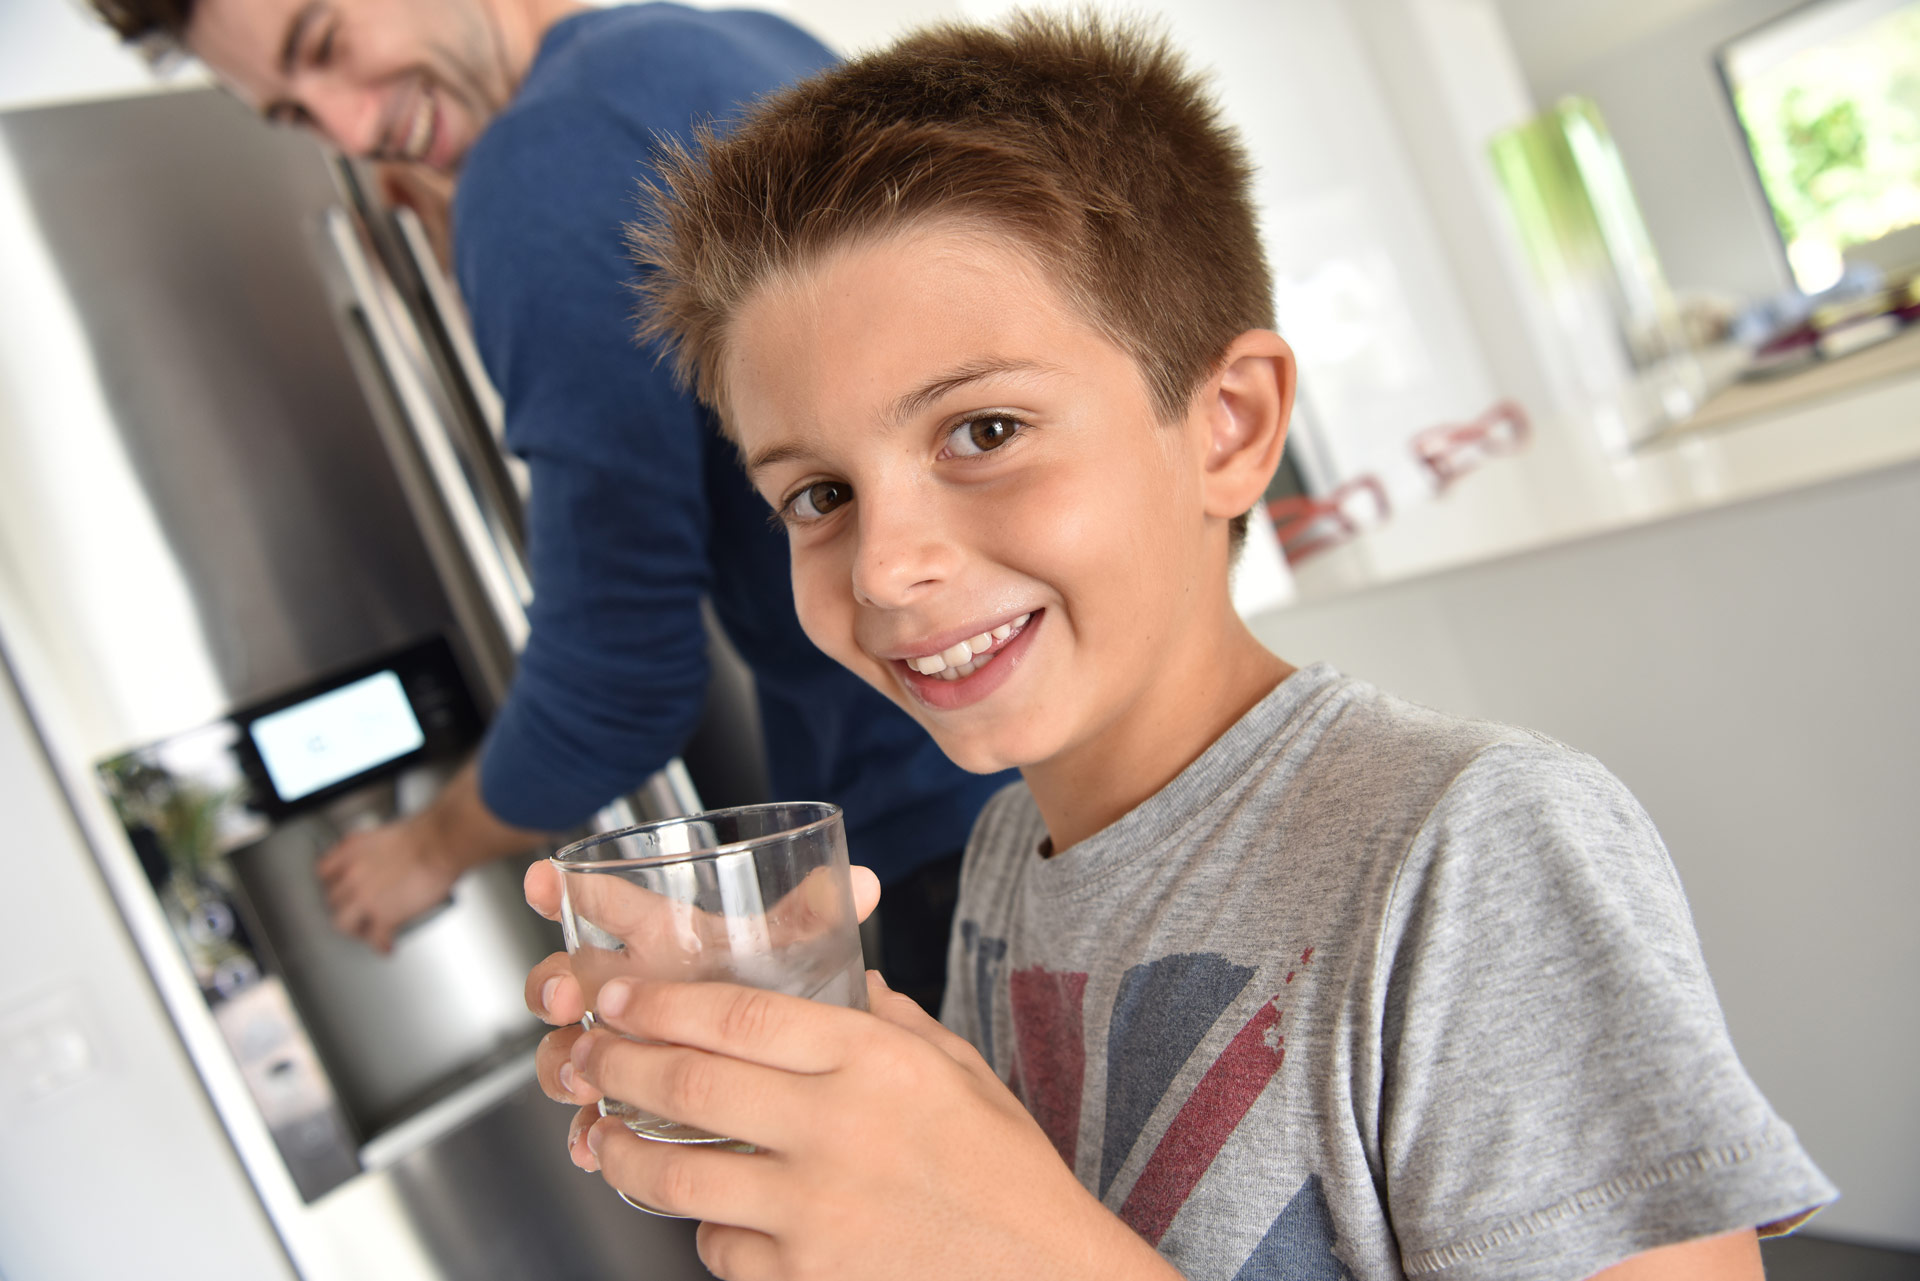 Boy drinking water in kitchen with dad behind him